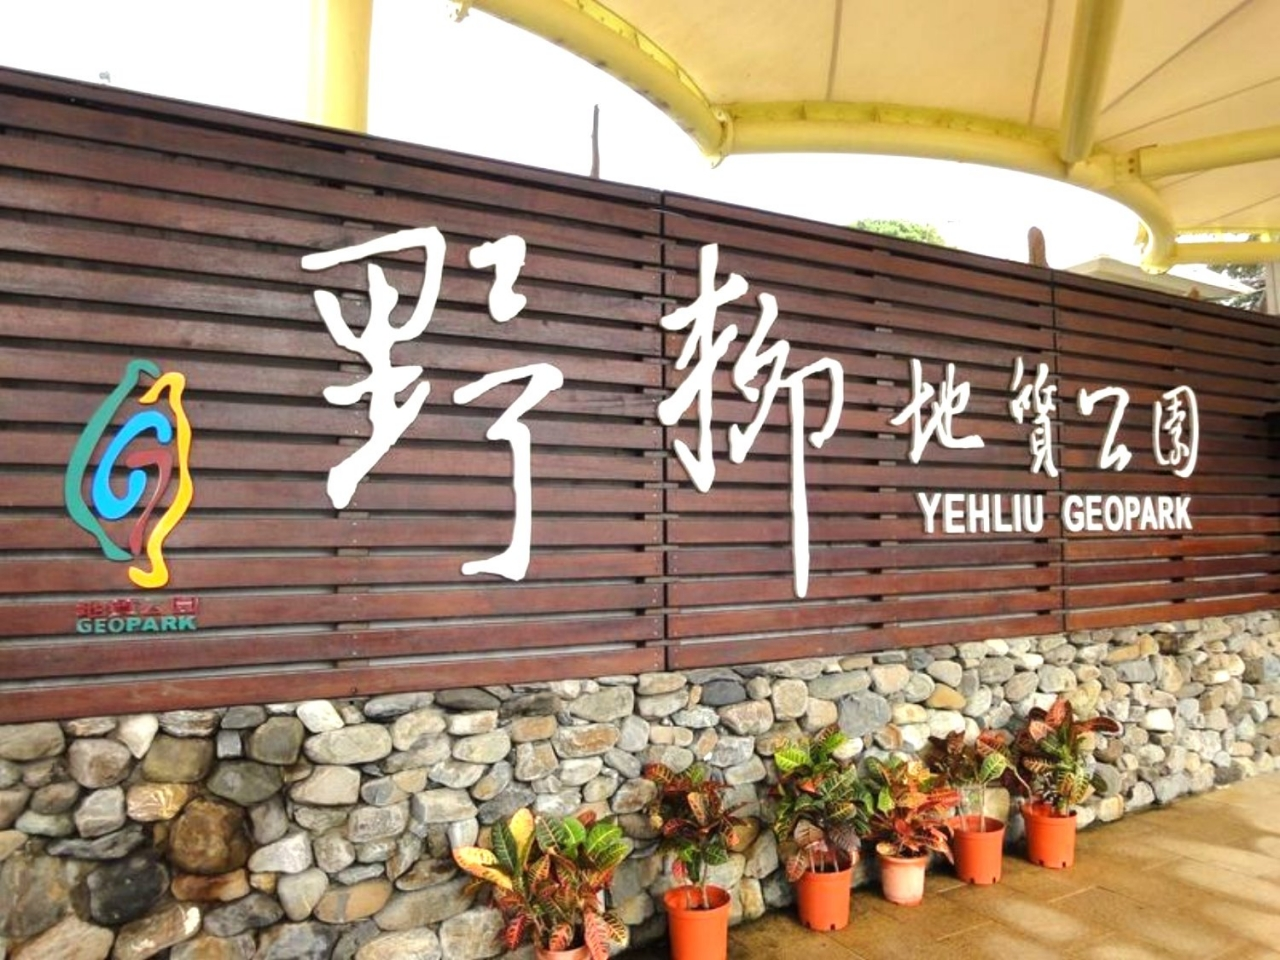 yehliu-geopark-taipei-attractions-of-color-fun-inn